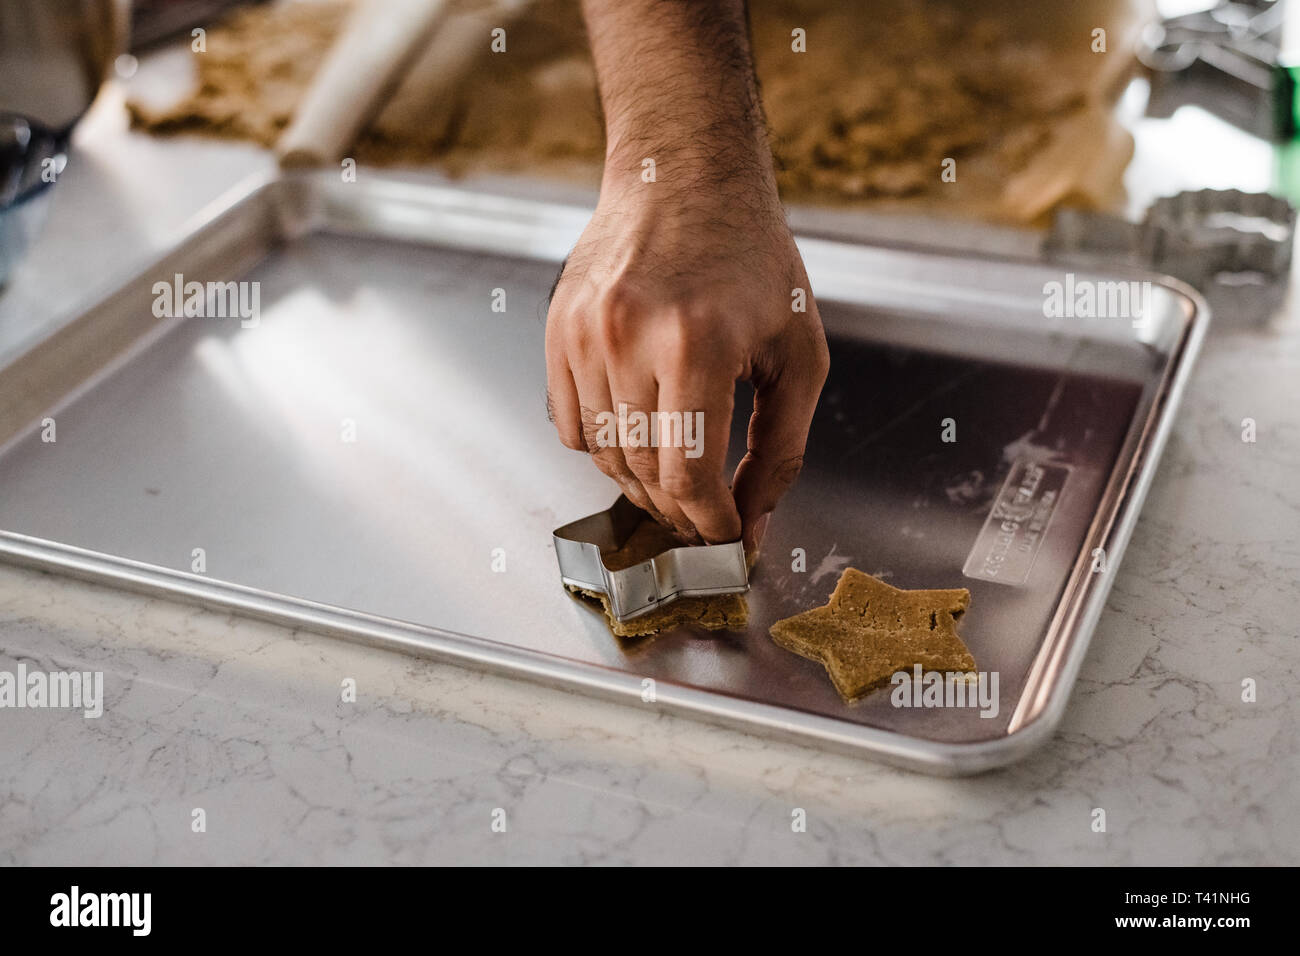 Man using cookie cutter - Stock Image